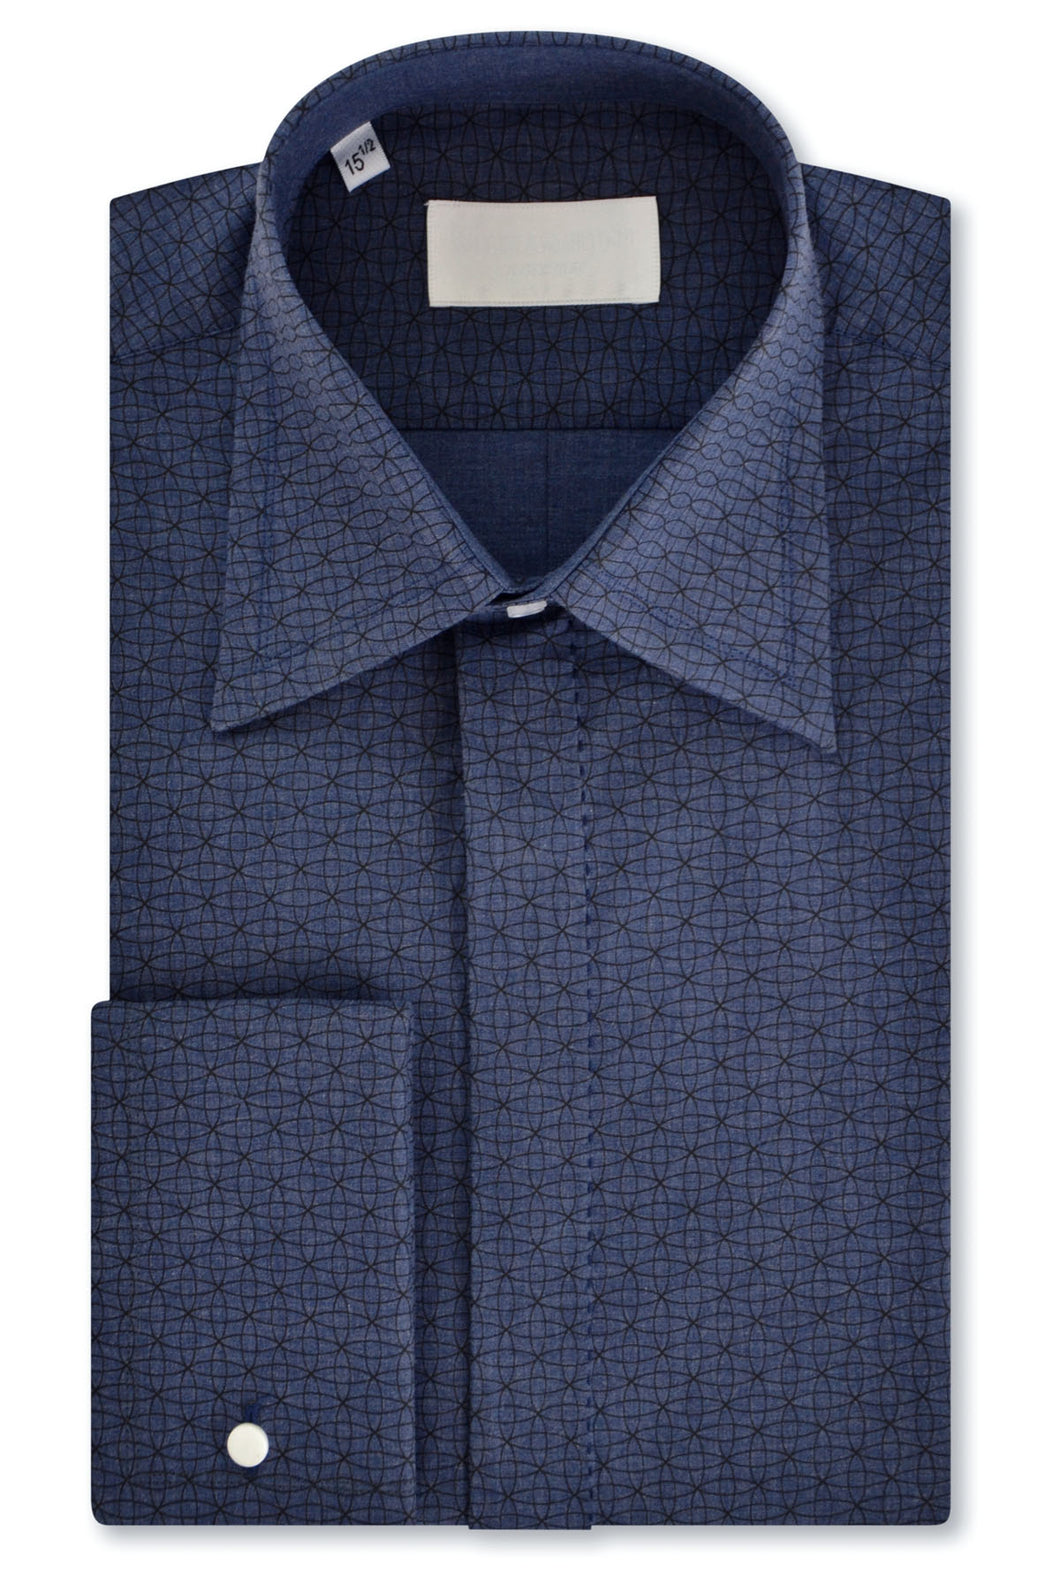 Black Geometric over Slate Blue Forward Point Collar Shirt